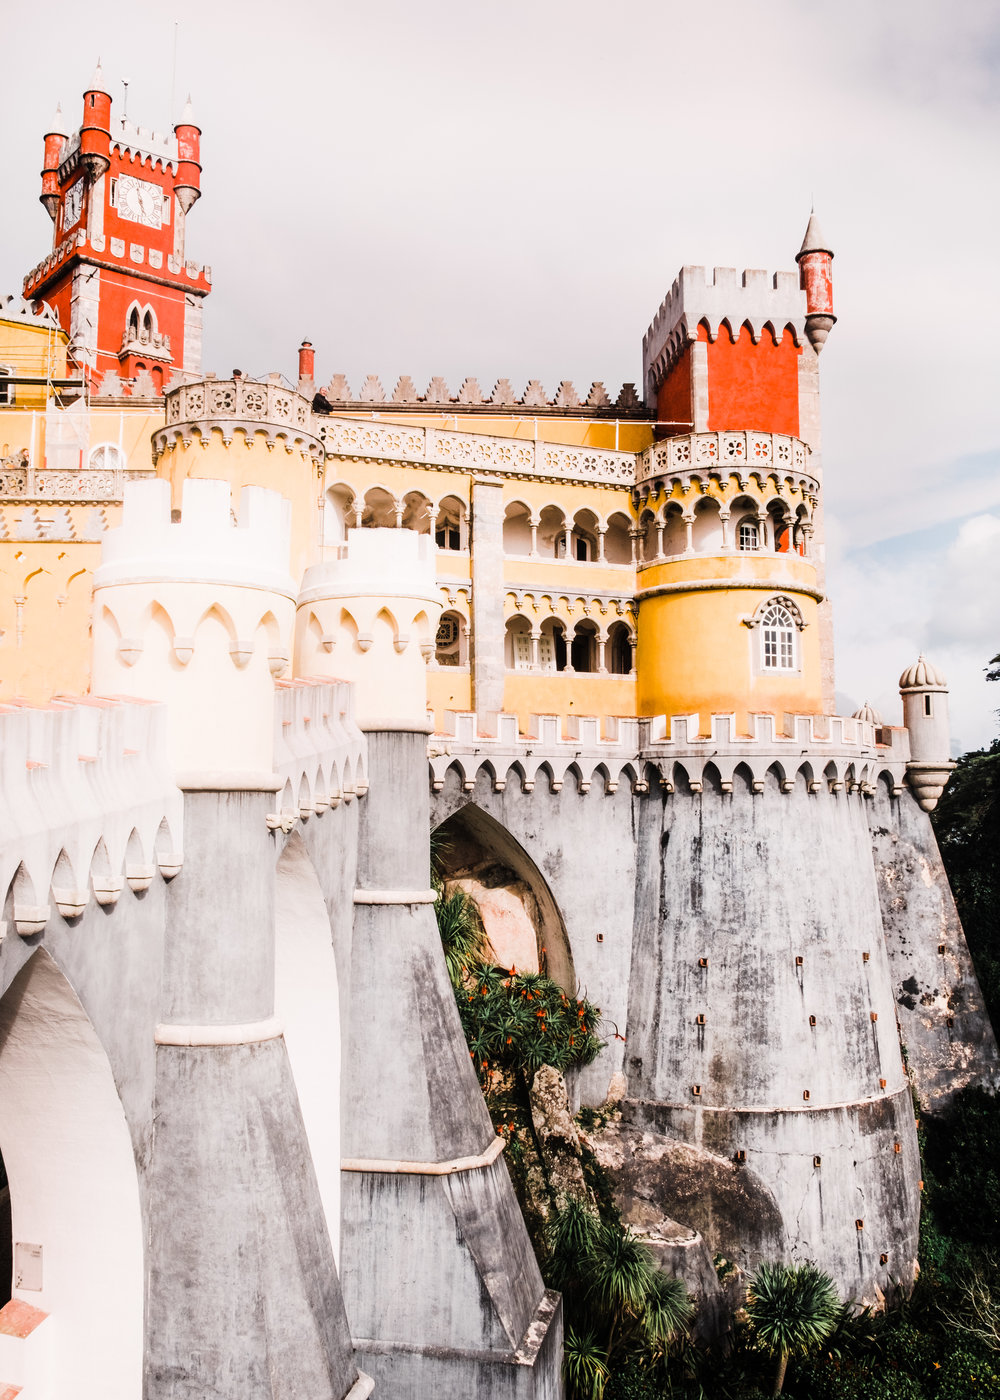 PenaPalace_Sintra_Portugal_JuliaMattis_Photo03.jpg